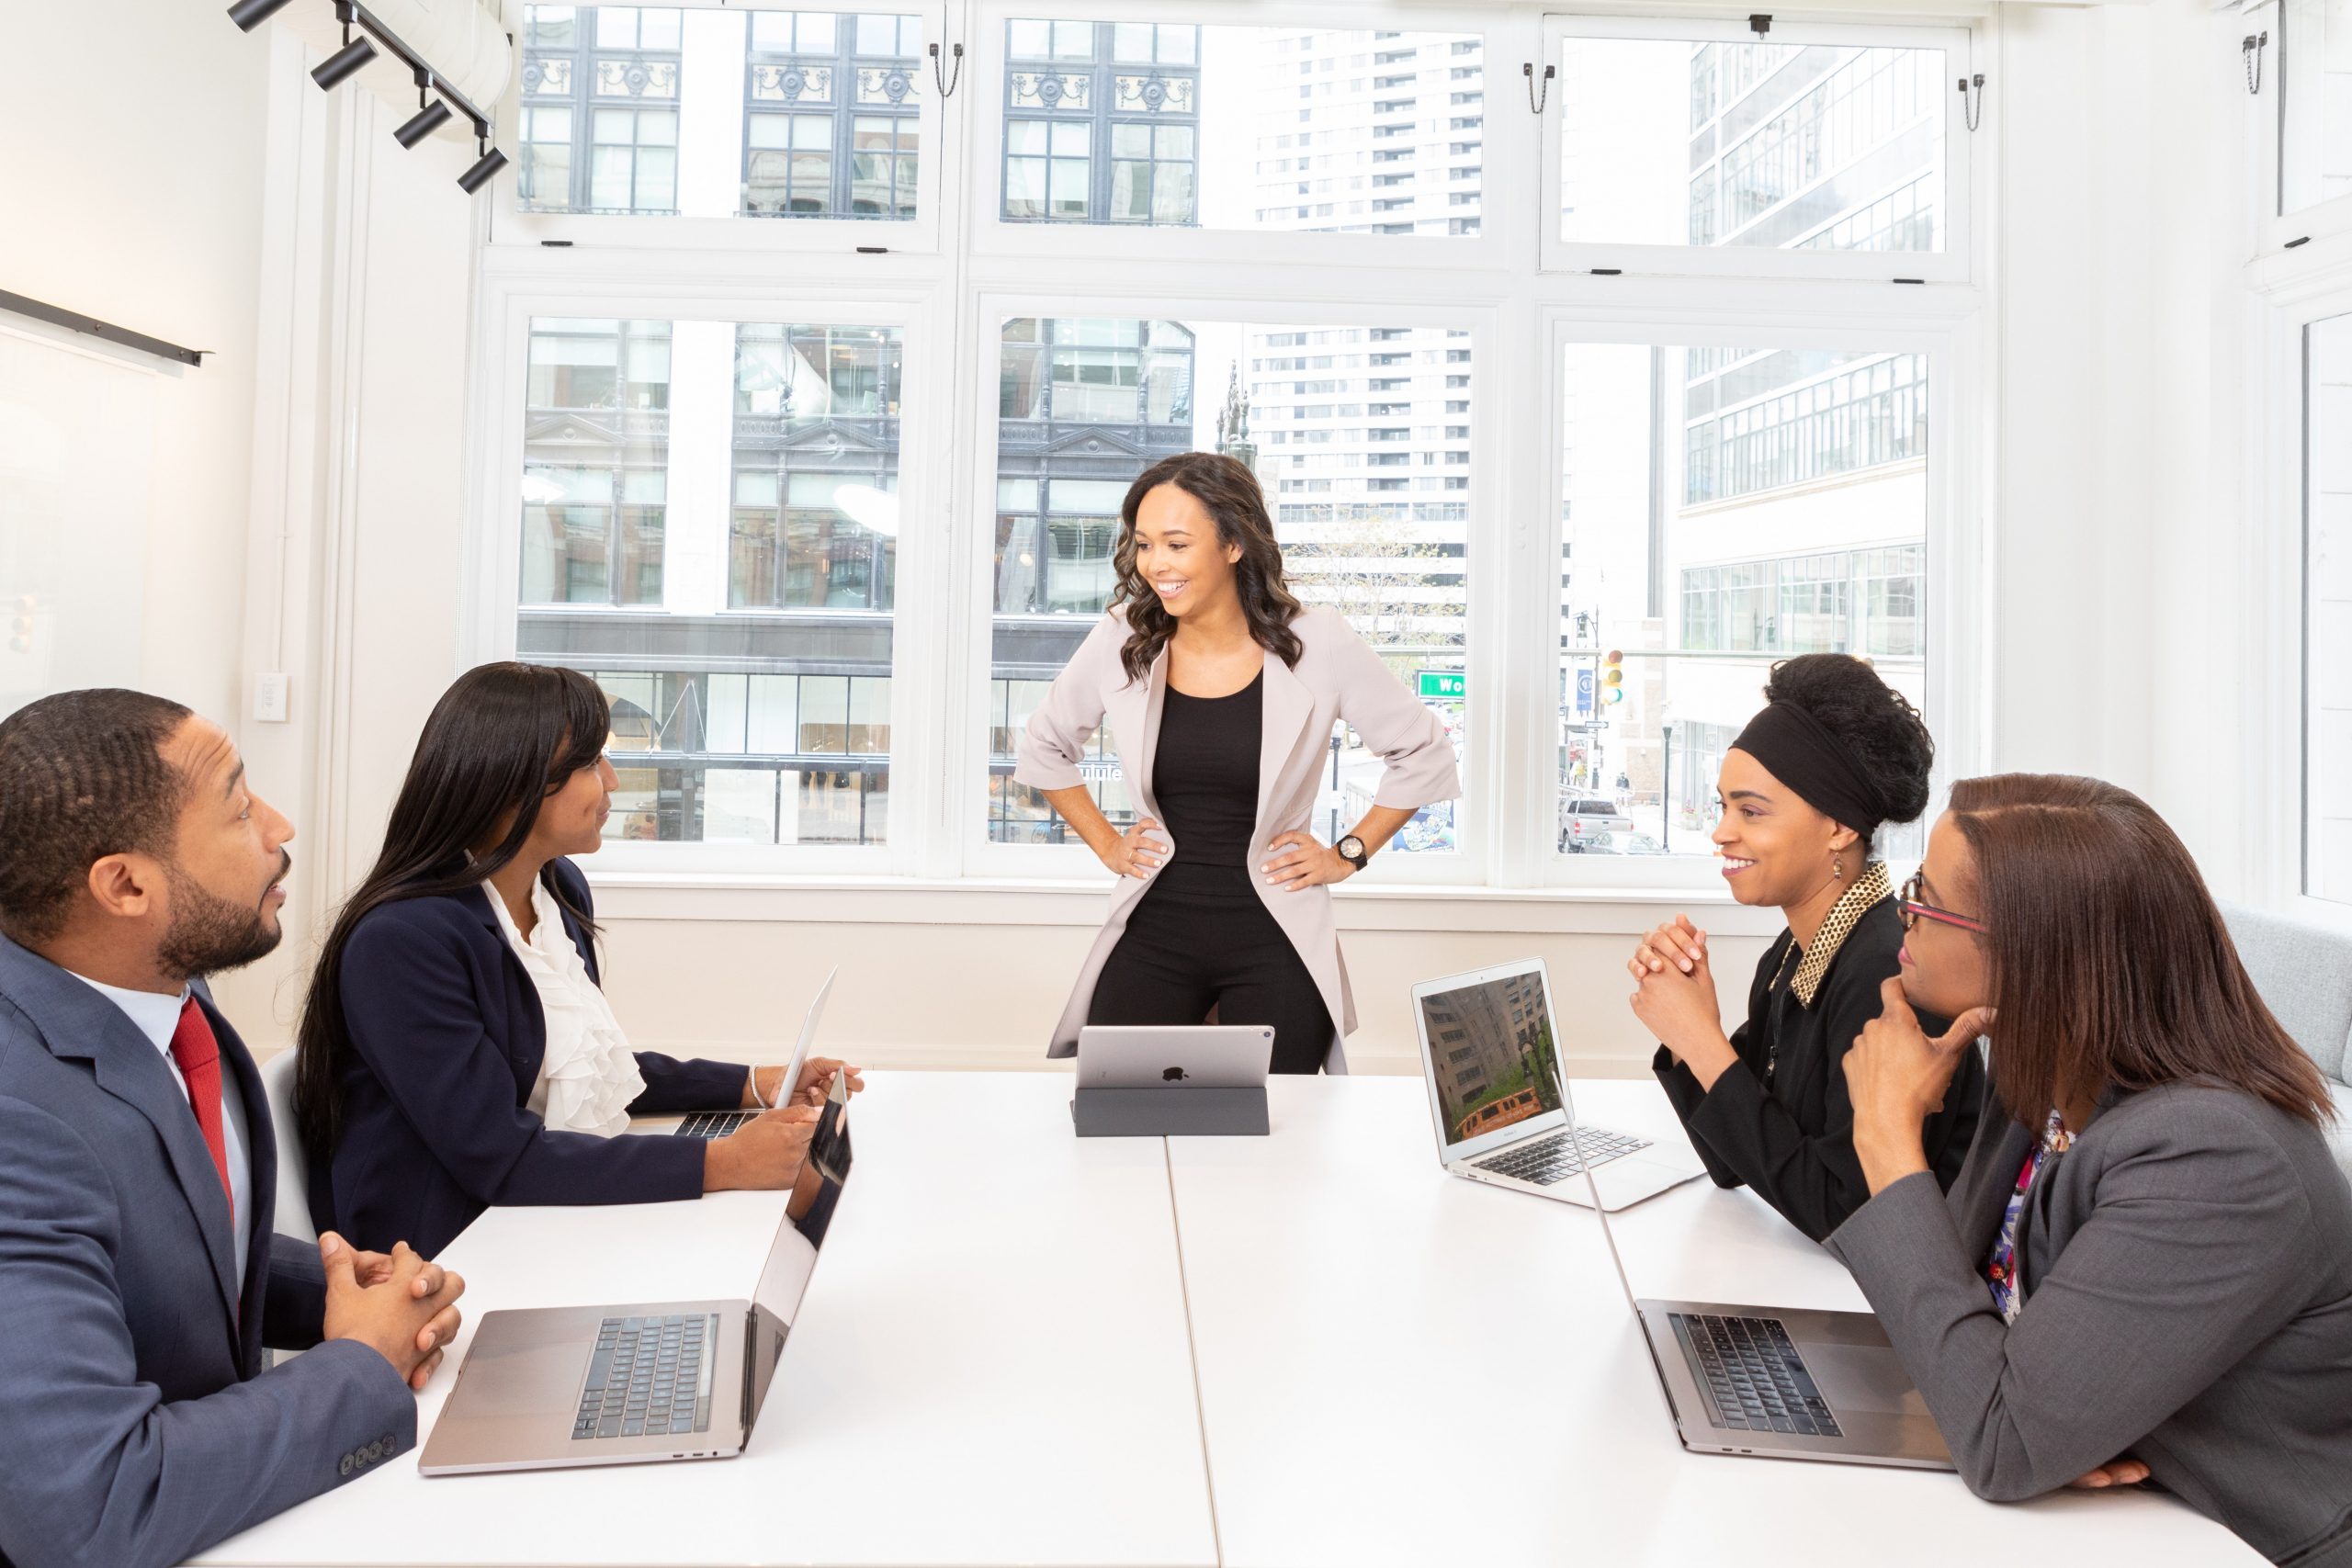 , Learning To Ask For Help When You Need It In Business